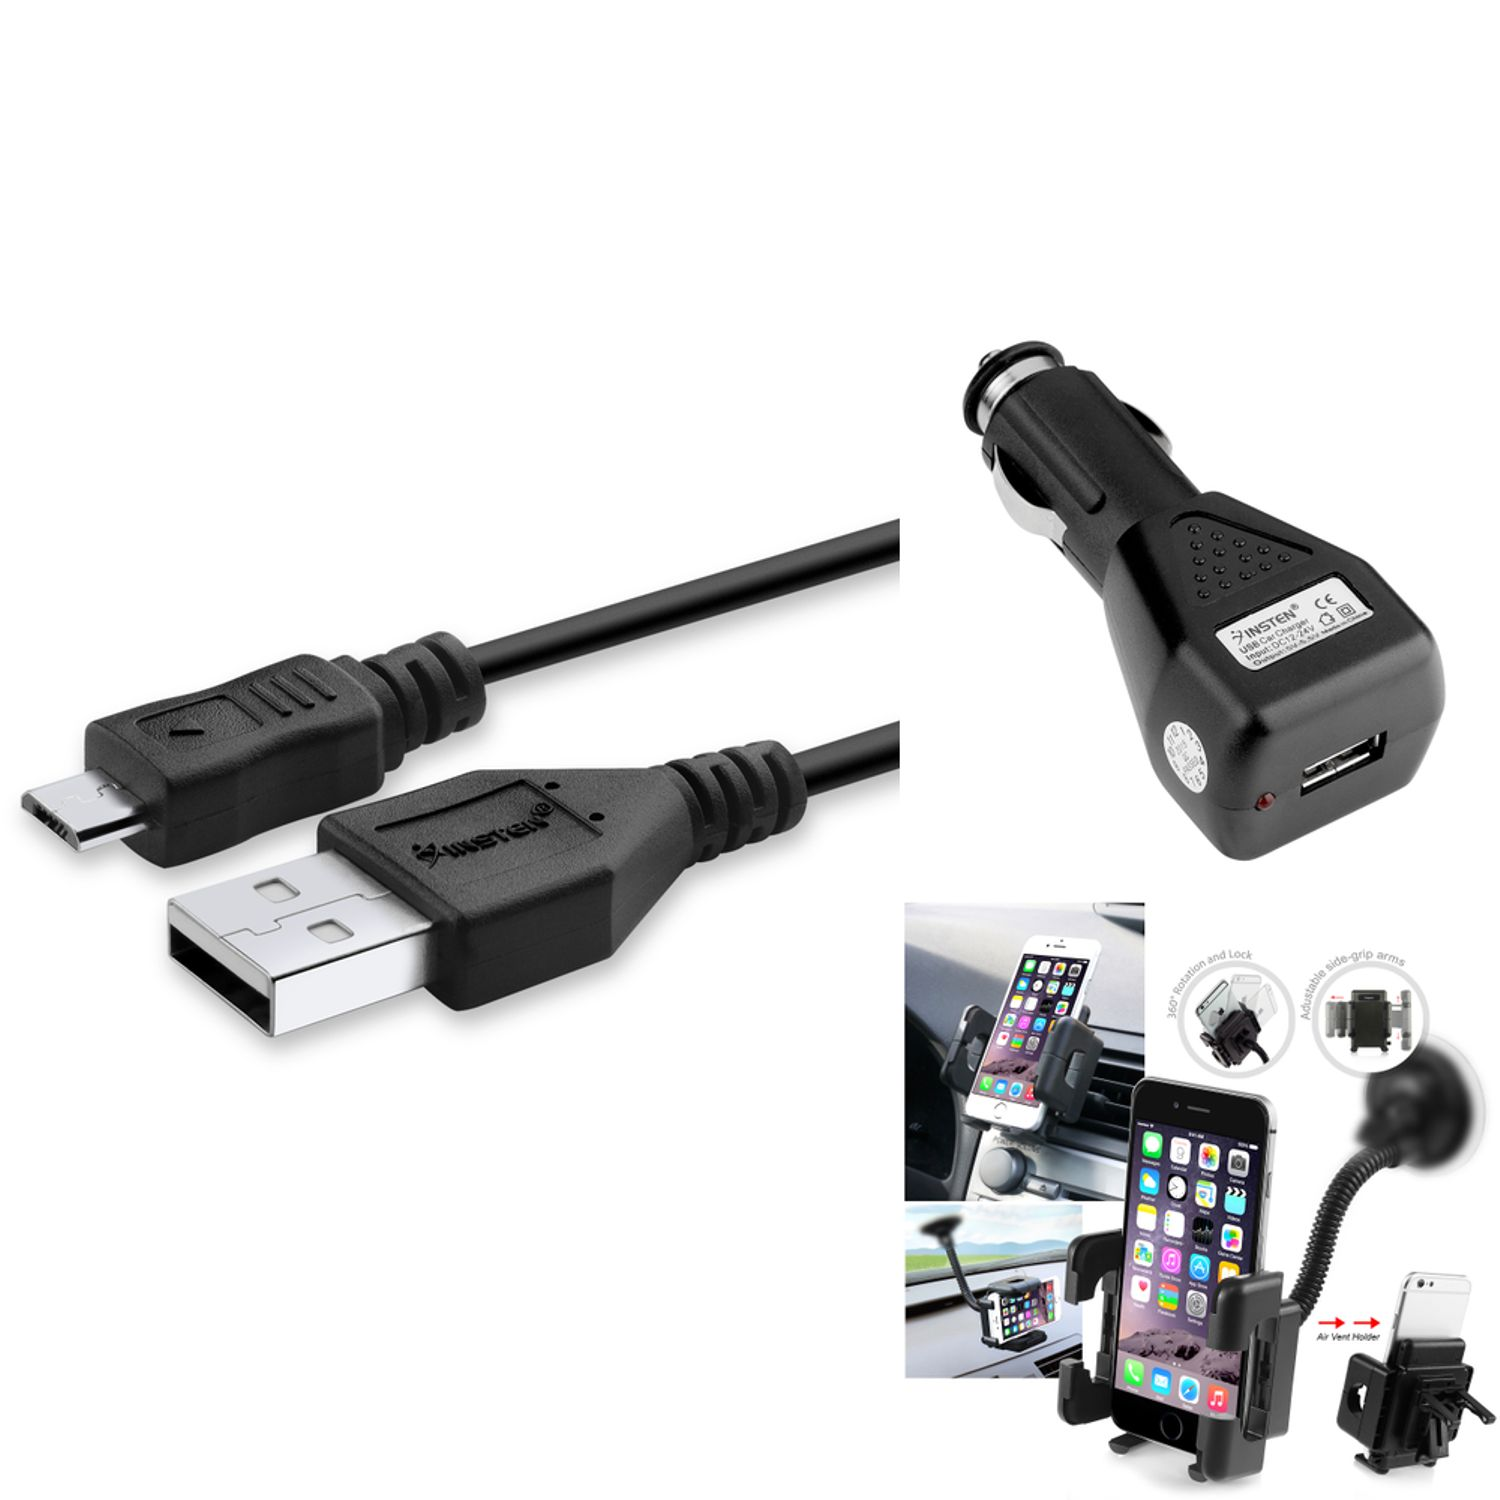 Insten Cell Phone Holder Vent Car Mount +CHARGER+USB CABLE FOR Samsung GALAXY Note 4 3 N9100 N9000